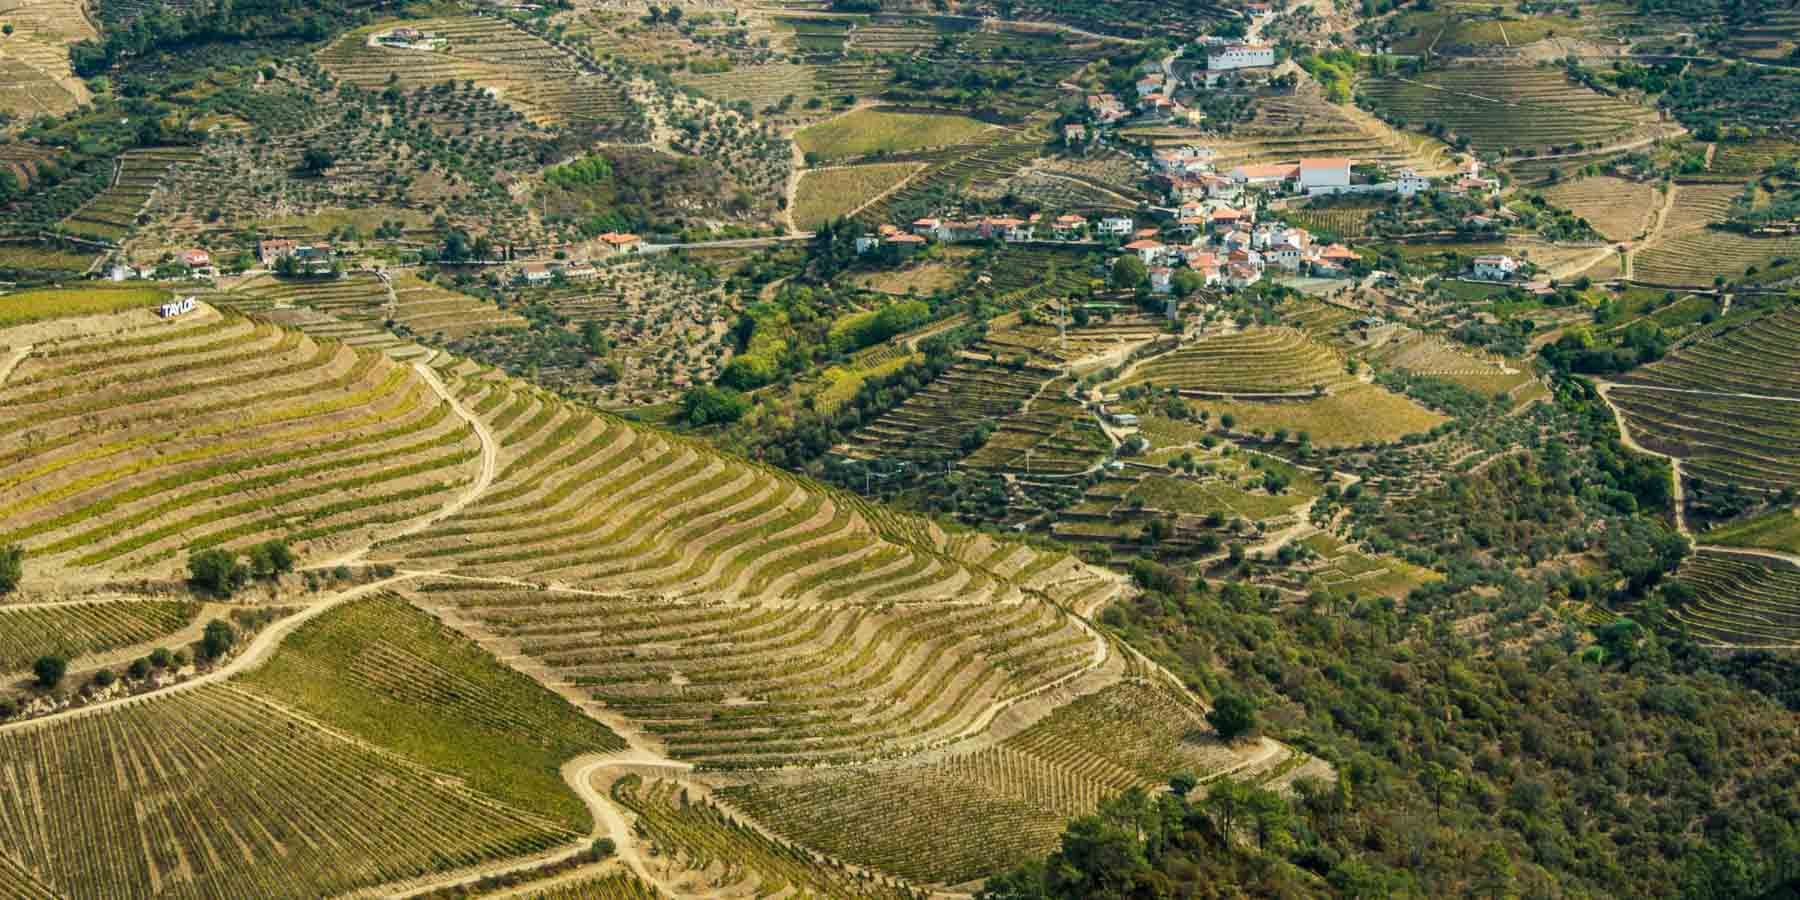 Renting a car in Portugal can be exciting driving on these little roads through vineyards.